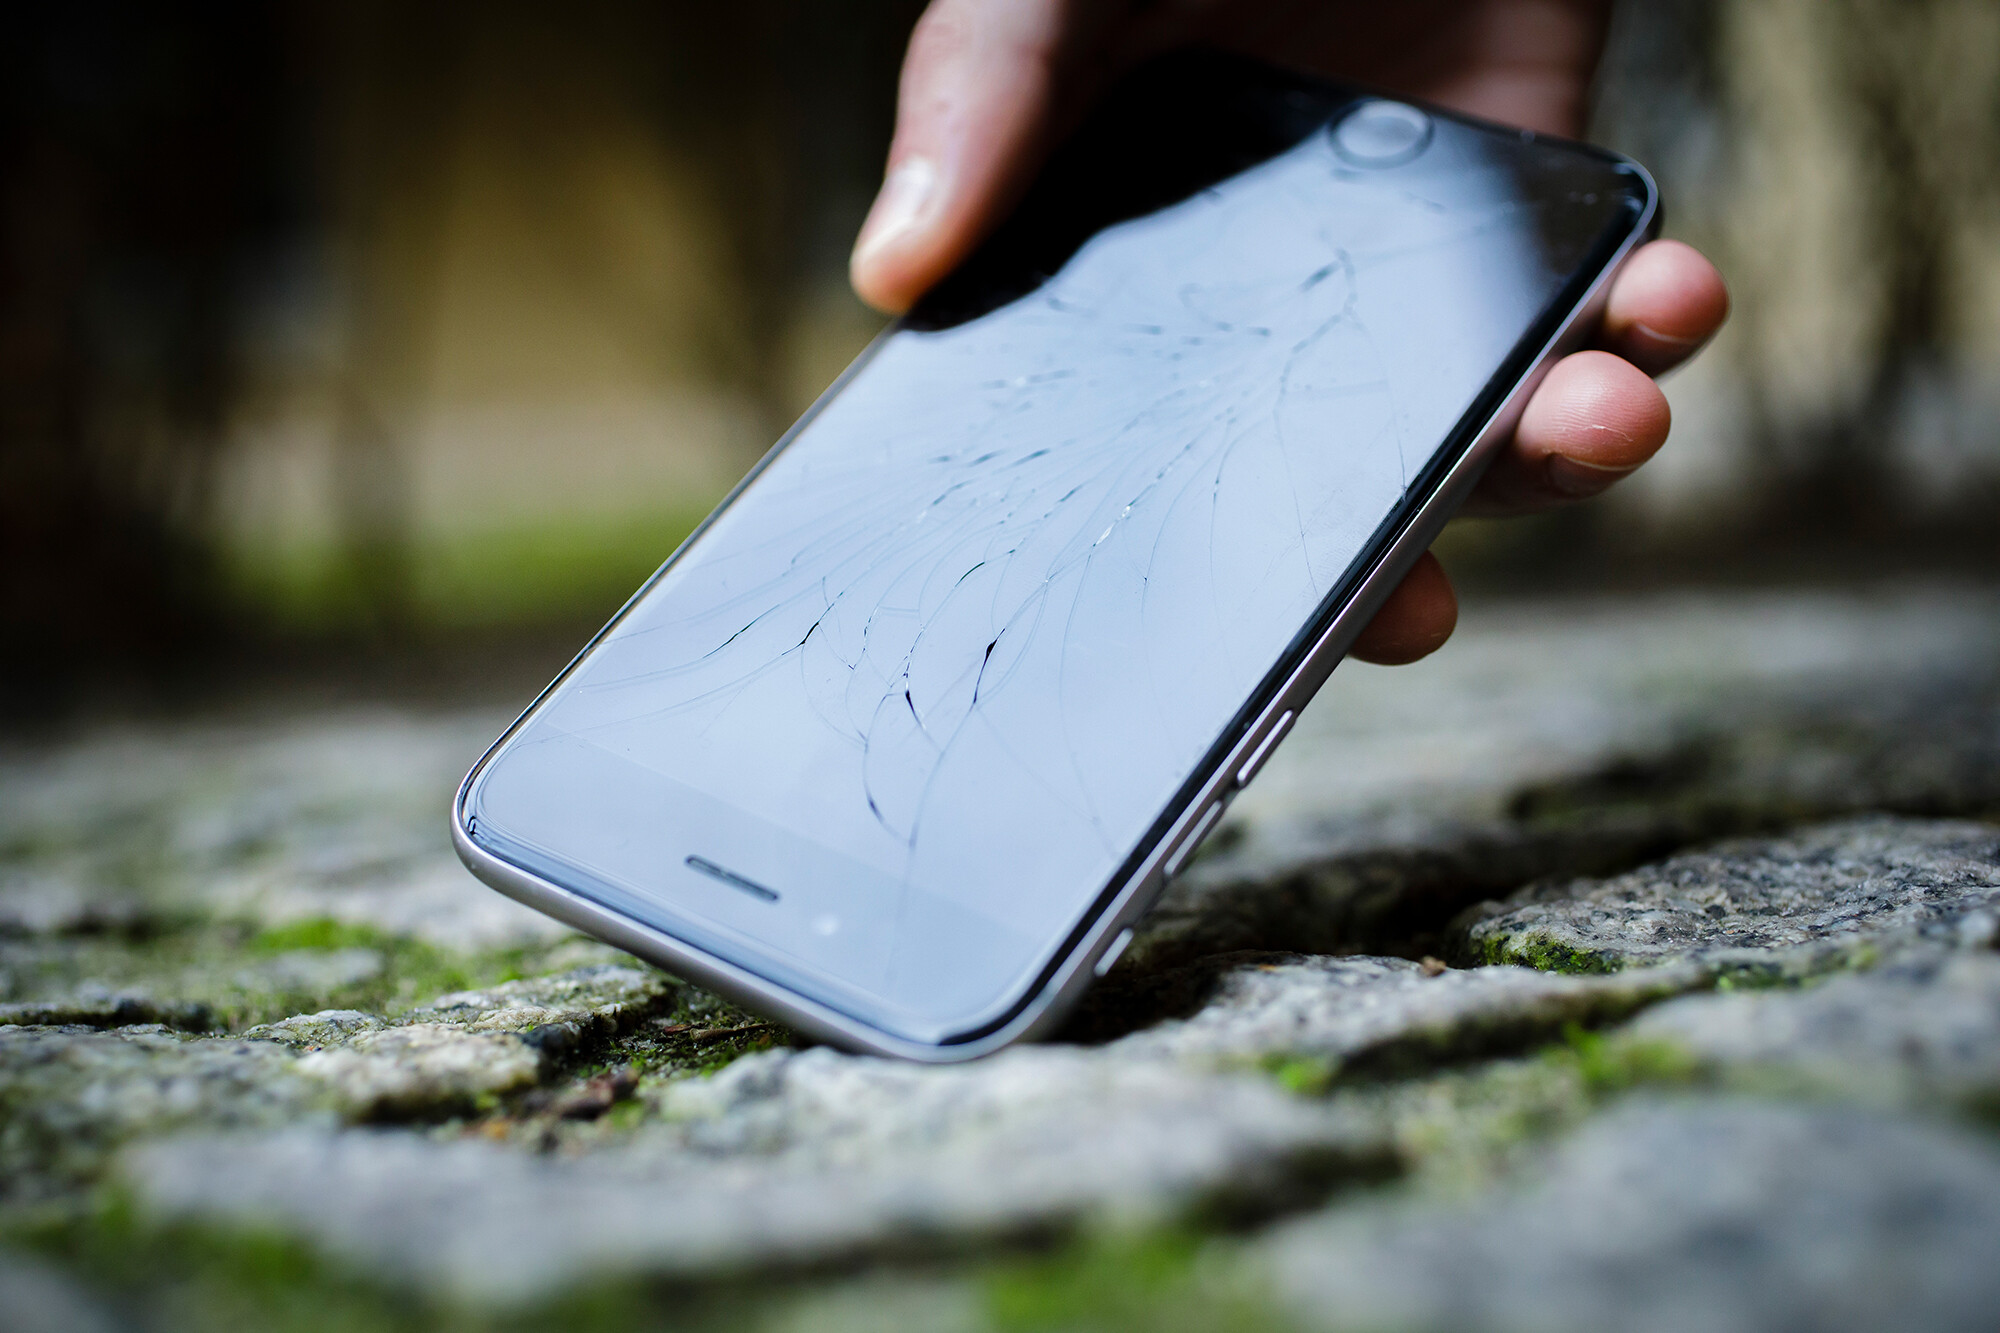 <i>Thomas Trutschel/Photothek/Getty Images</i><br/>Future smartphones may be designed with he ability to be repaired